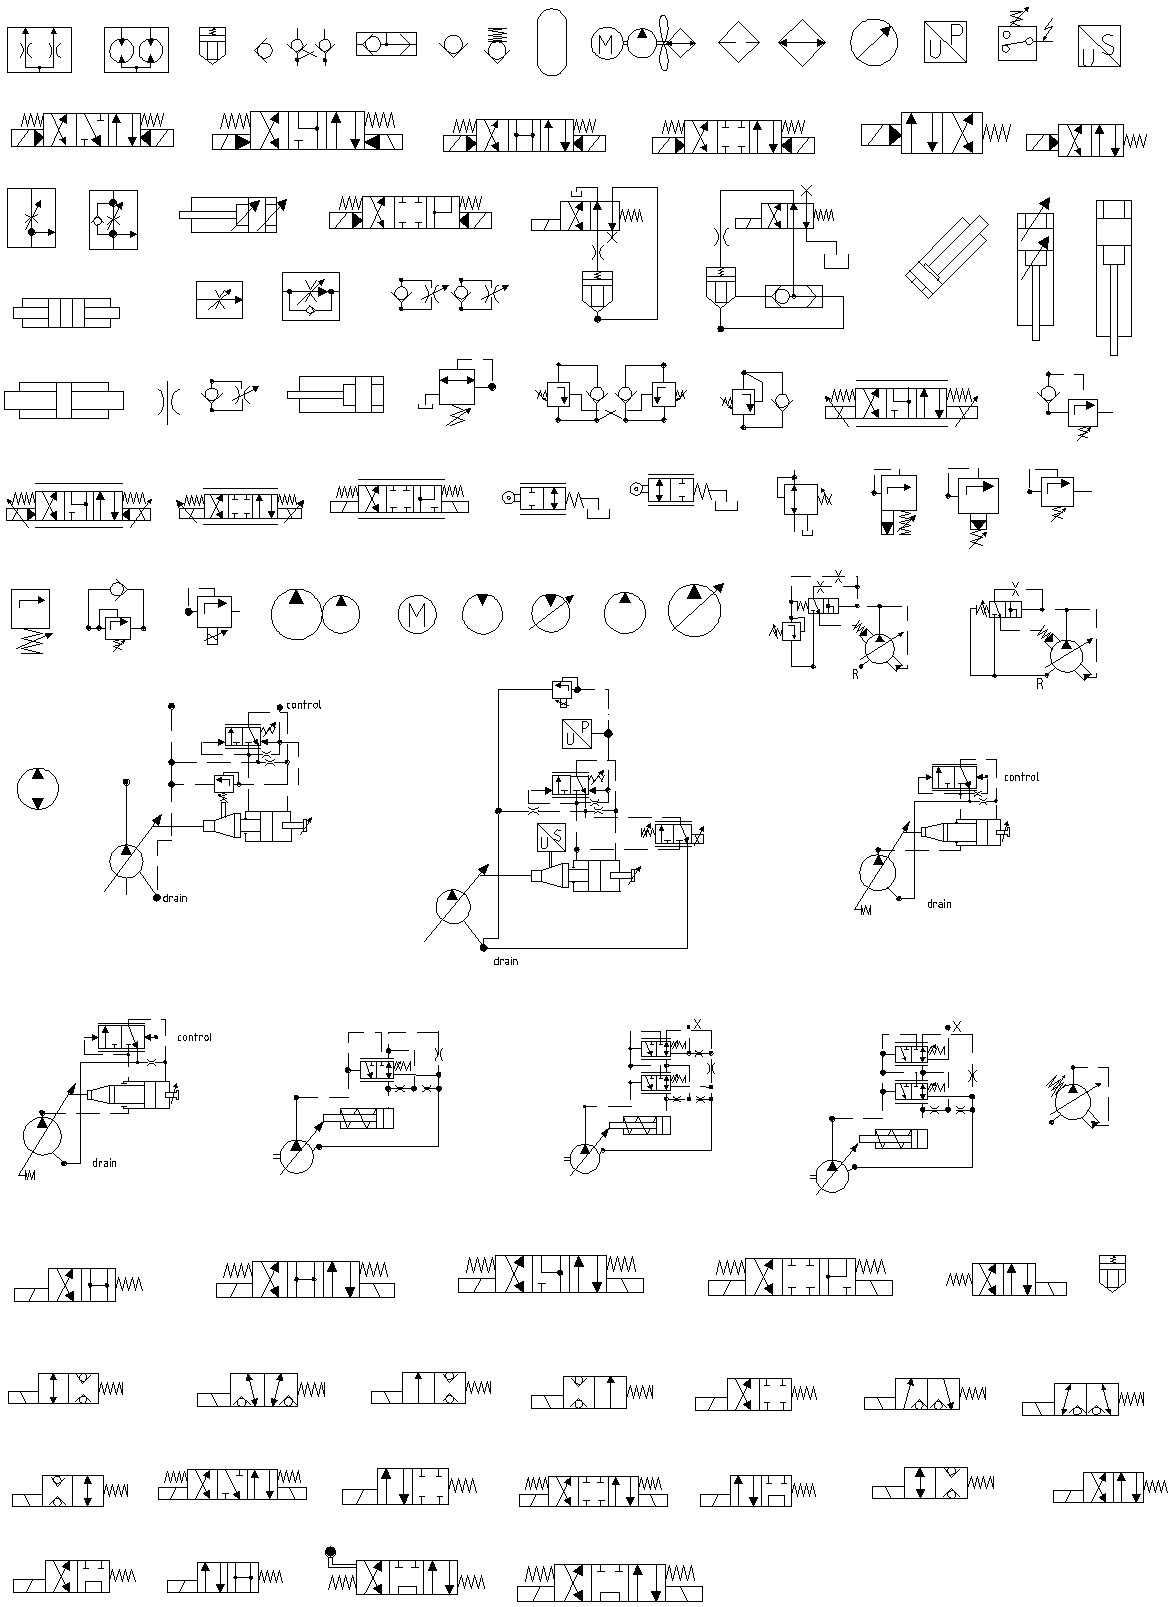 Cad Wiring Diagram Symbols : Hydraulic pneumatic and electrical schematic software